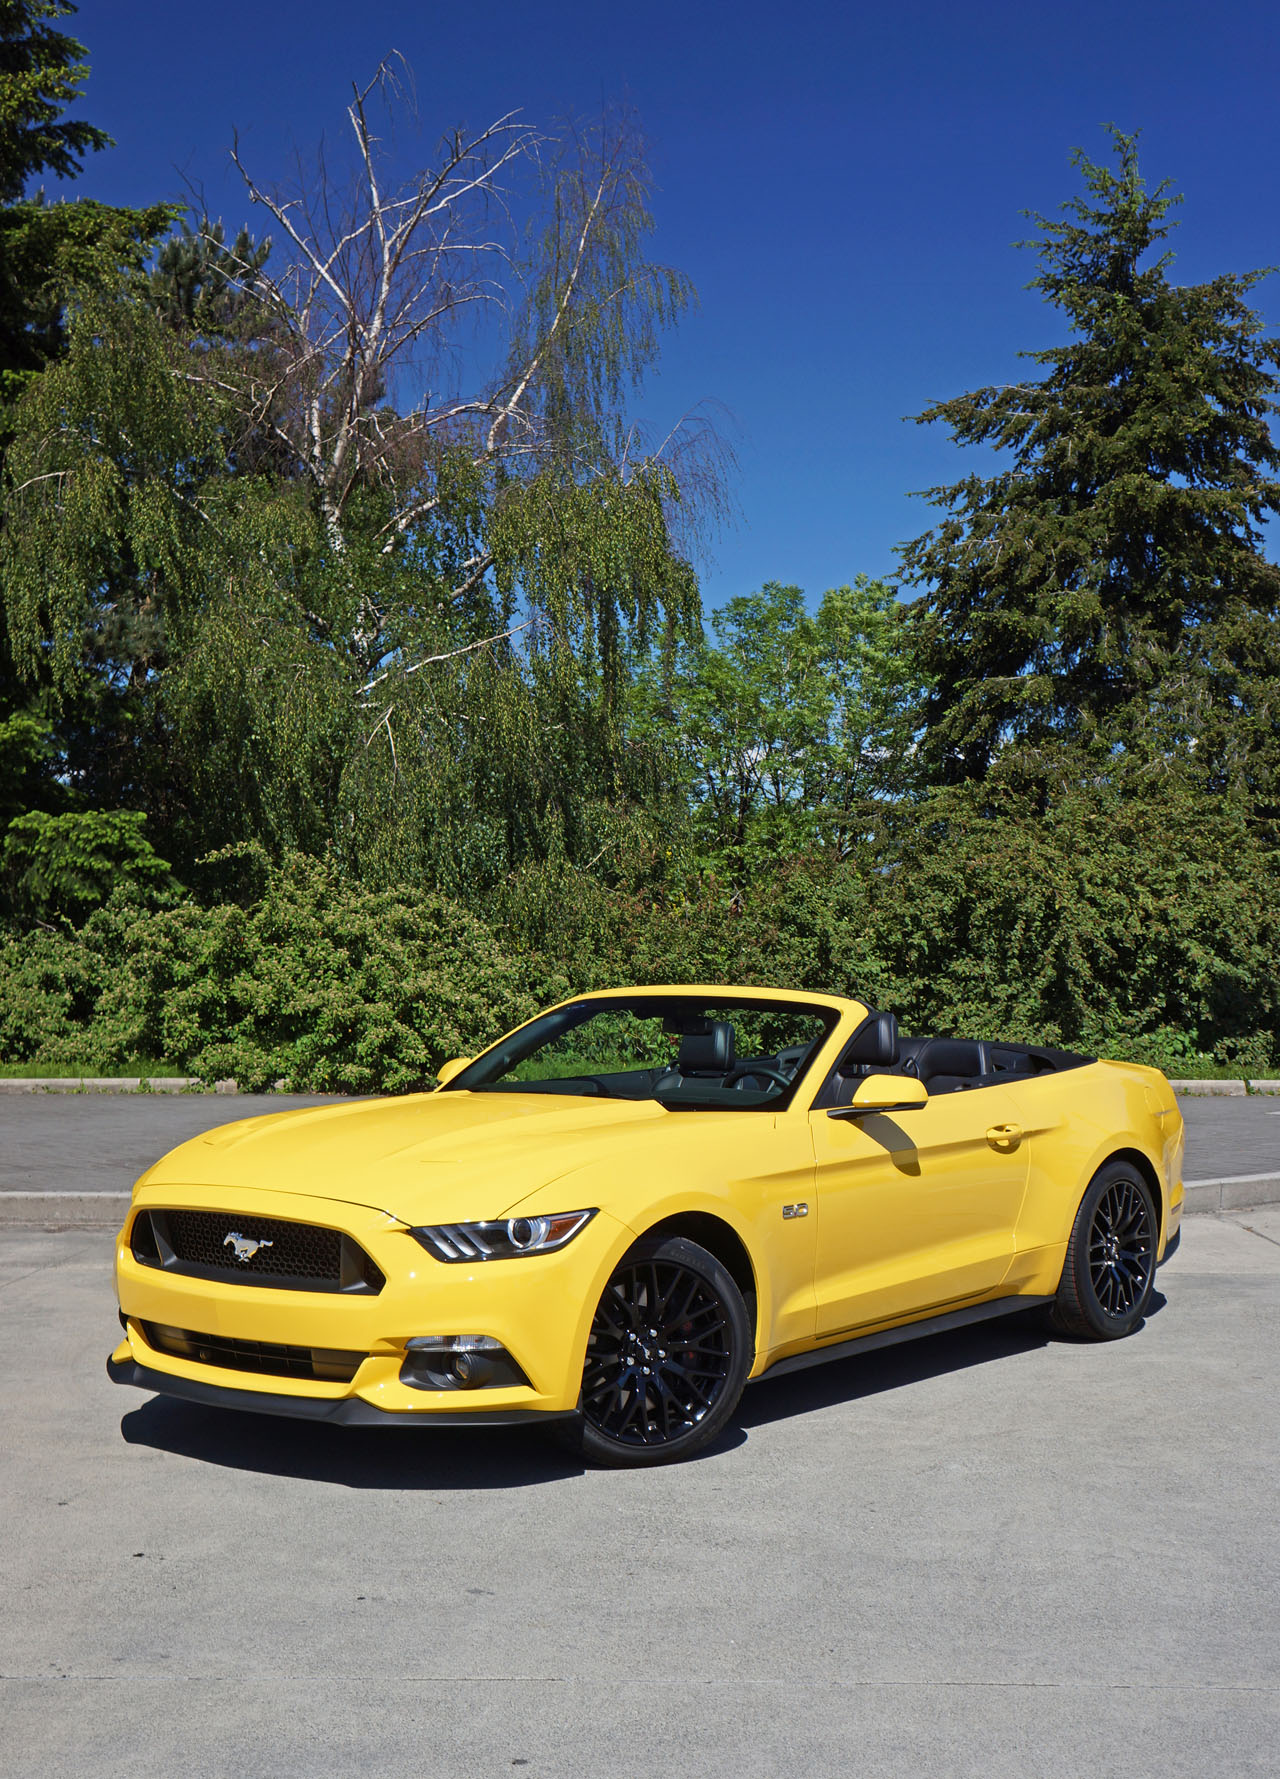 2016 ford mustang gt convertible road test review carcostcanada. Black Bedroom Furniture Sets. Home Design Ideas